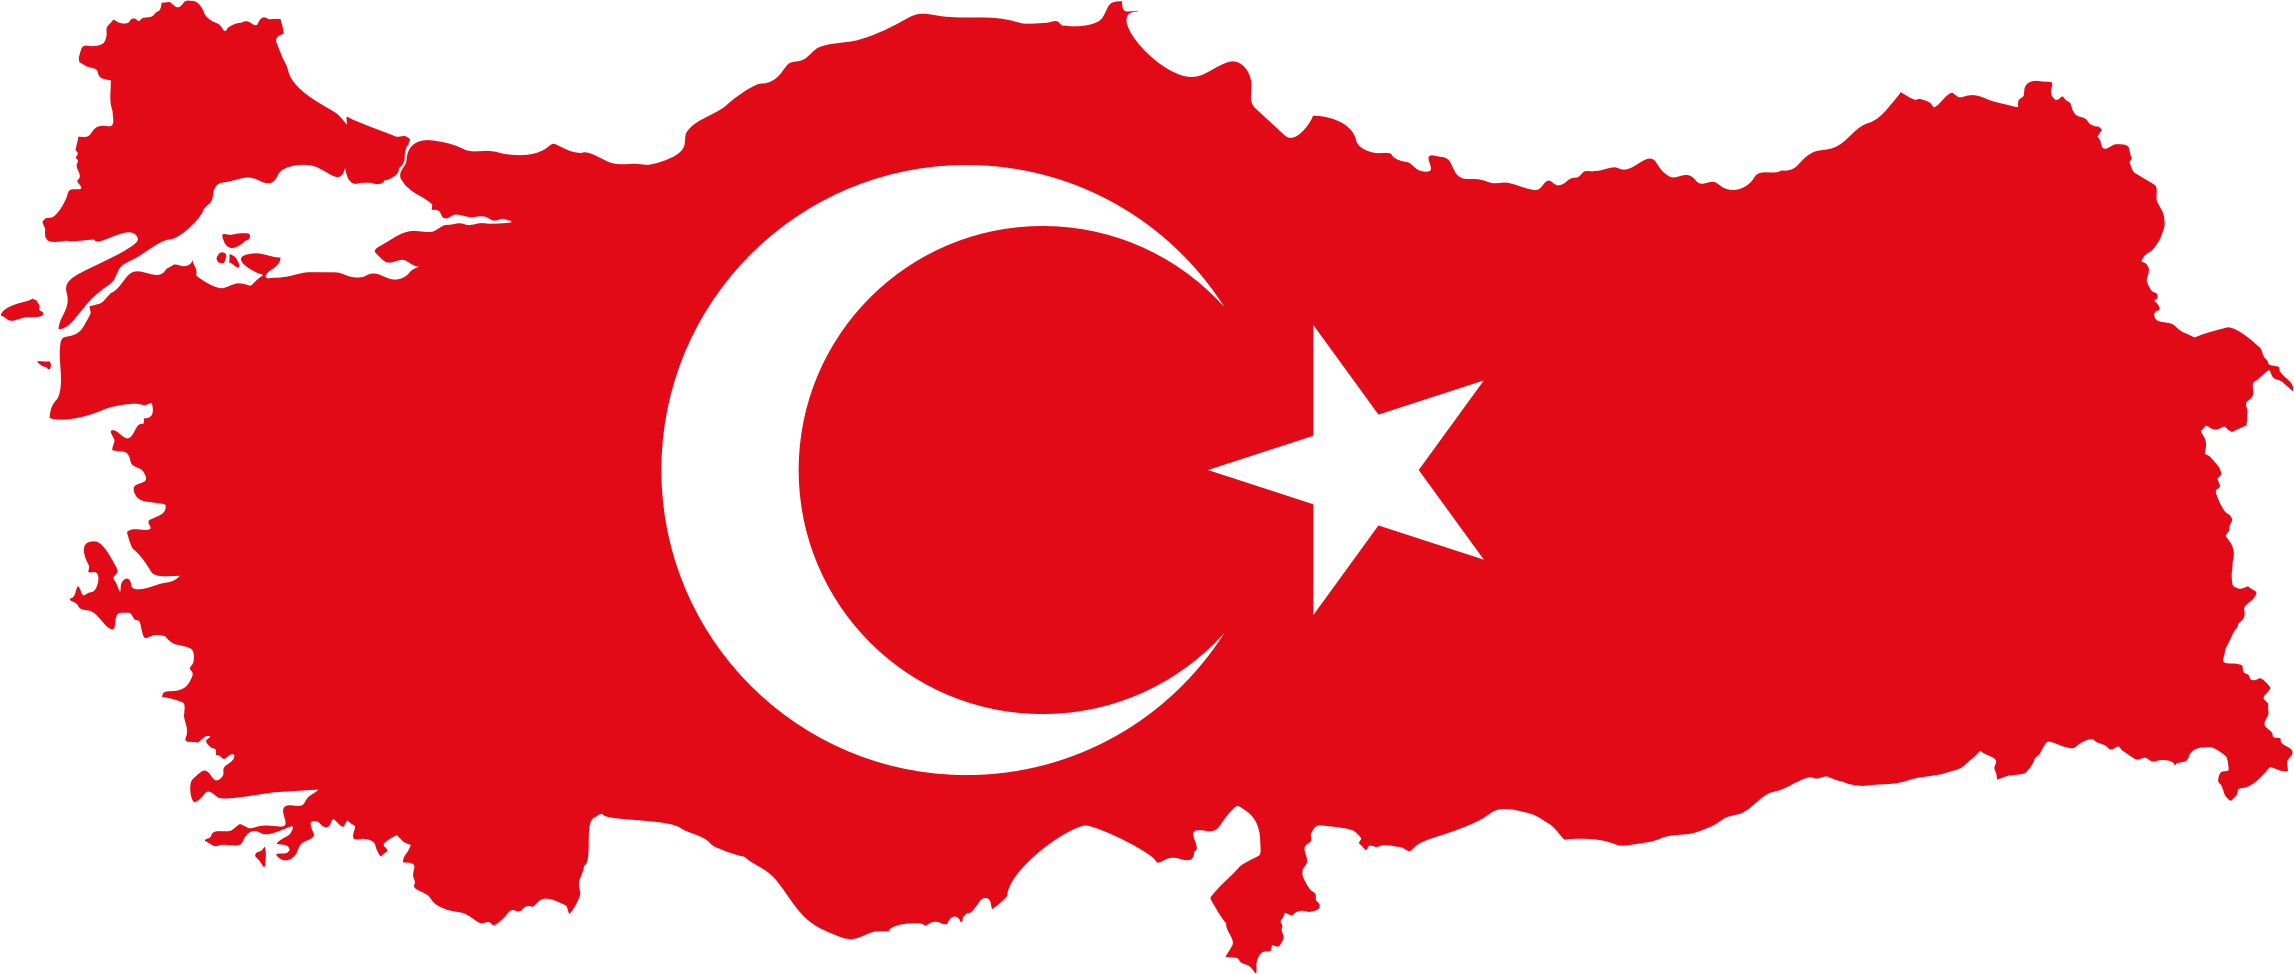 Turkey country clipart clip art royalty free Clipart - Turkey Map Flag clip art royalty free